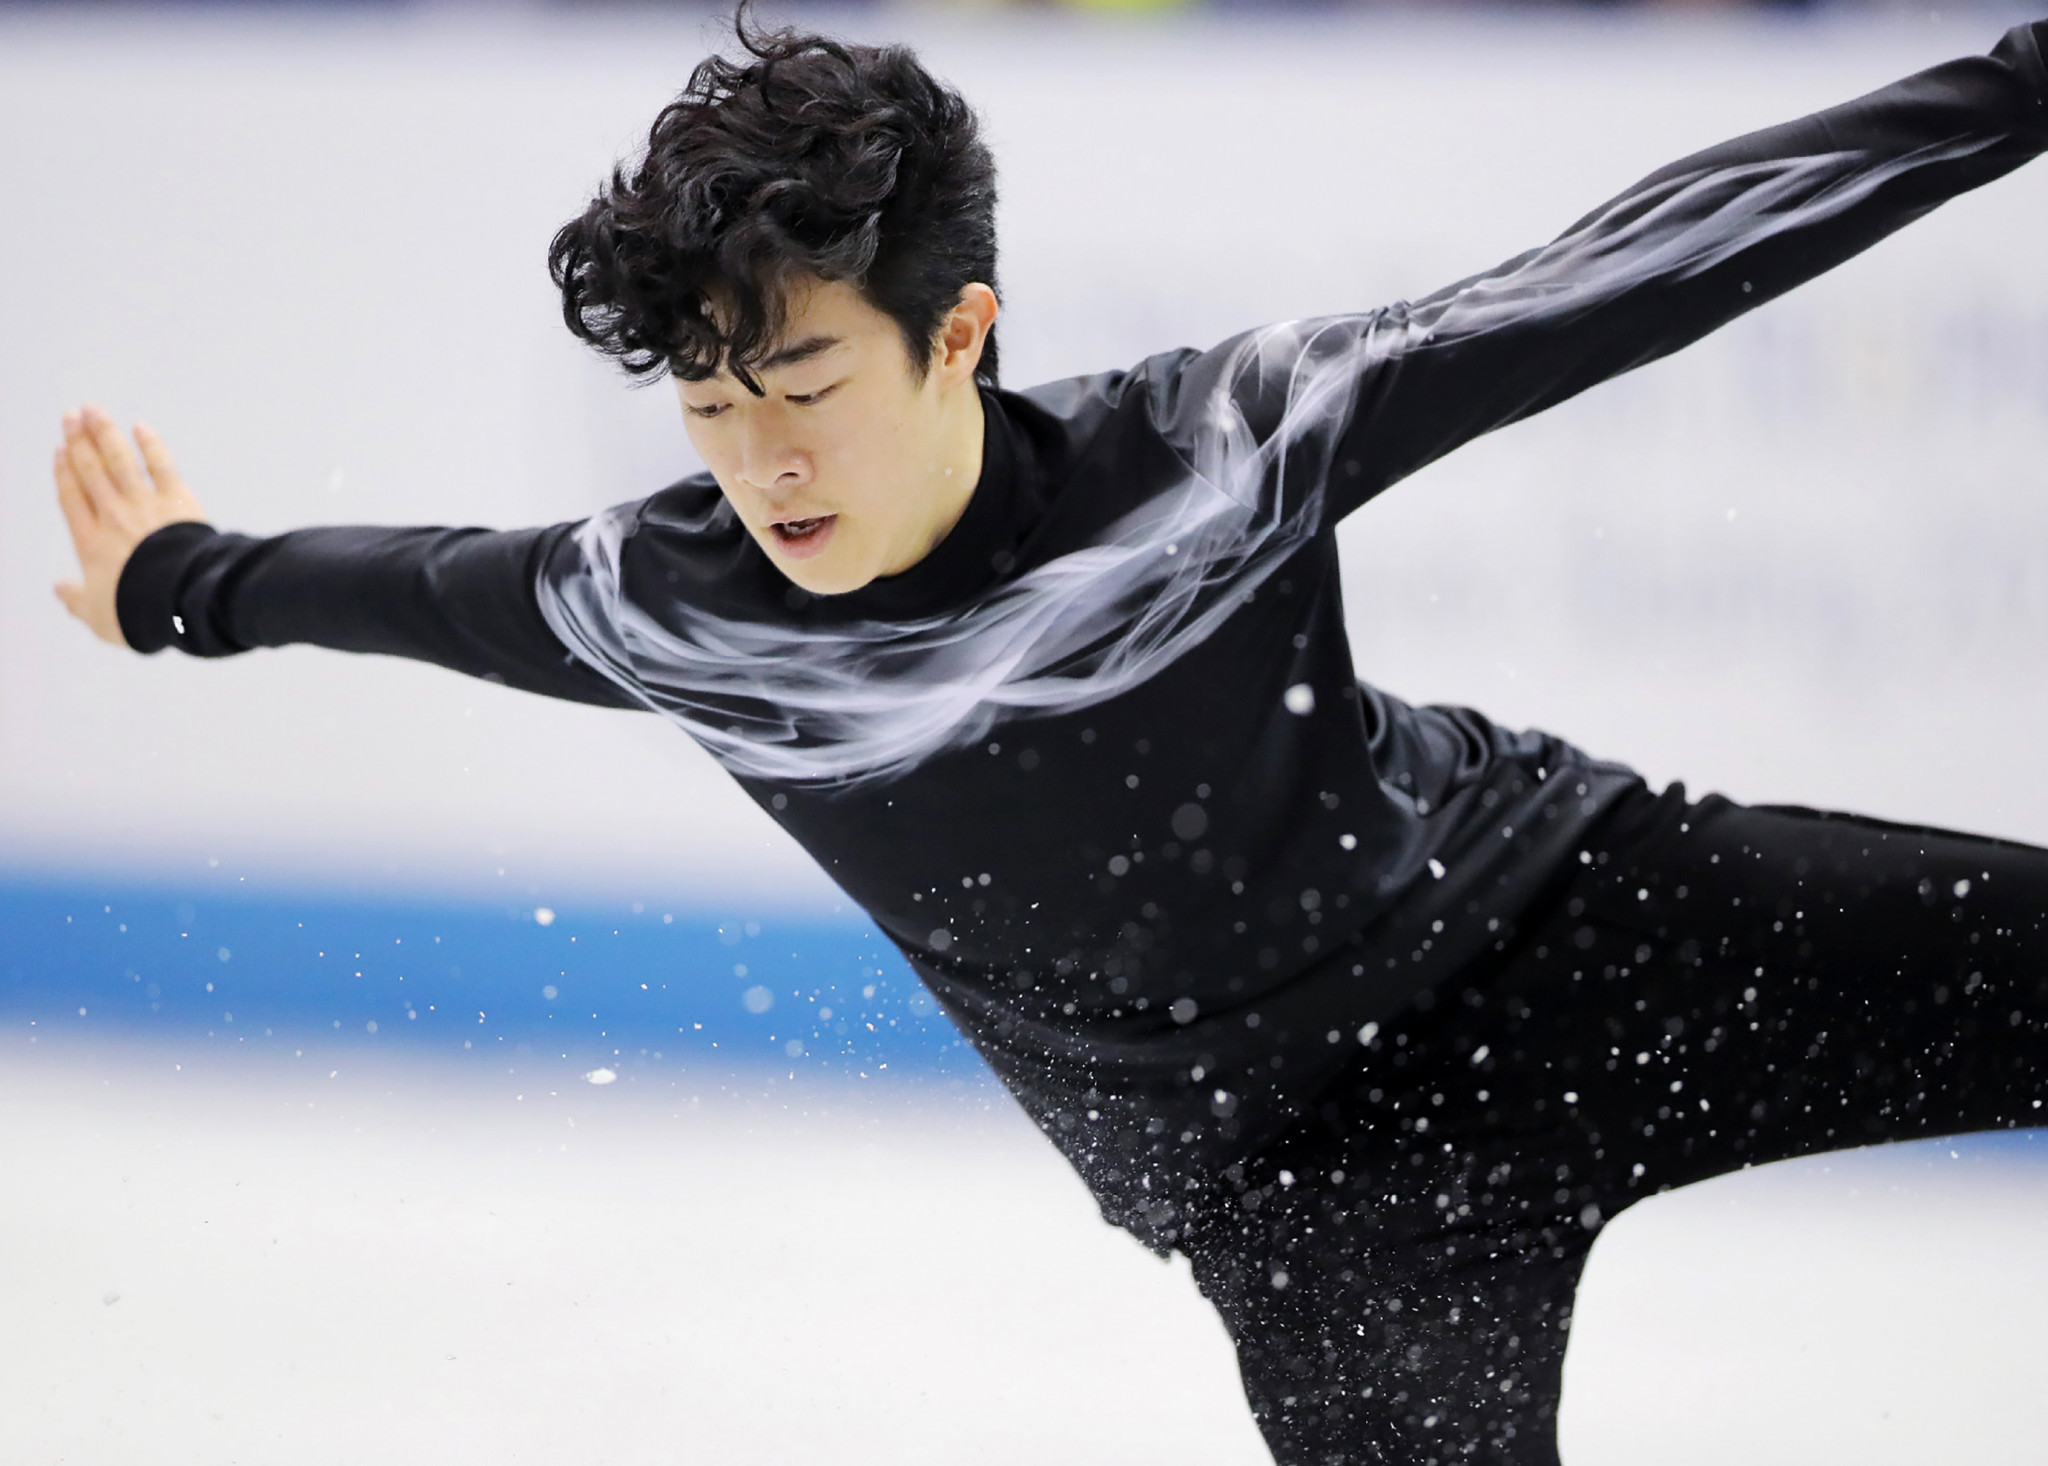 World champion Nathan Chen will lead the men's challenge for the United States at next month's Skate America event ©Getty Images